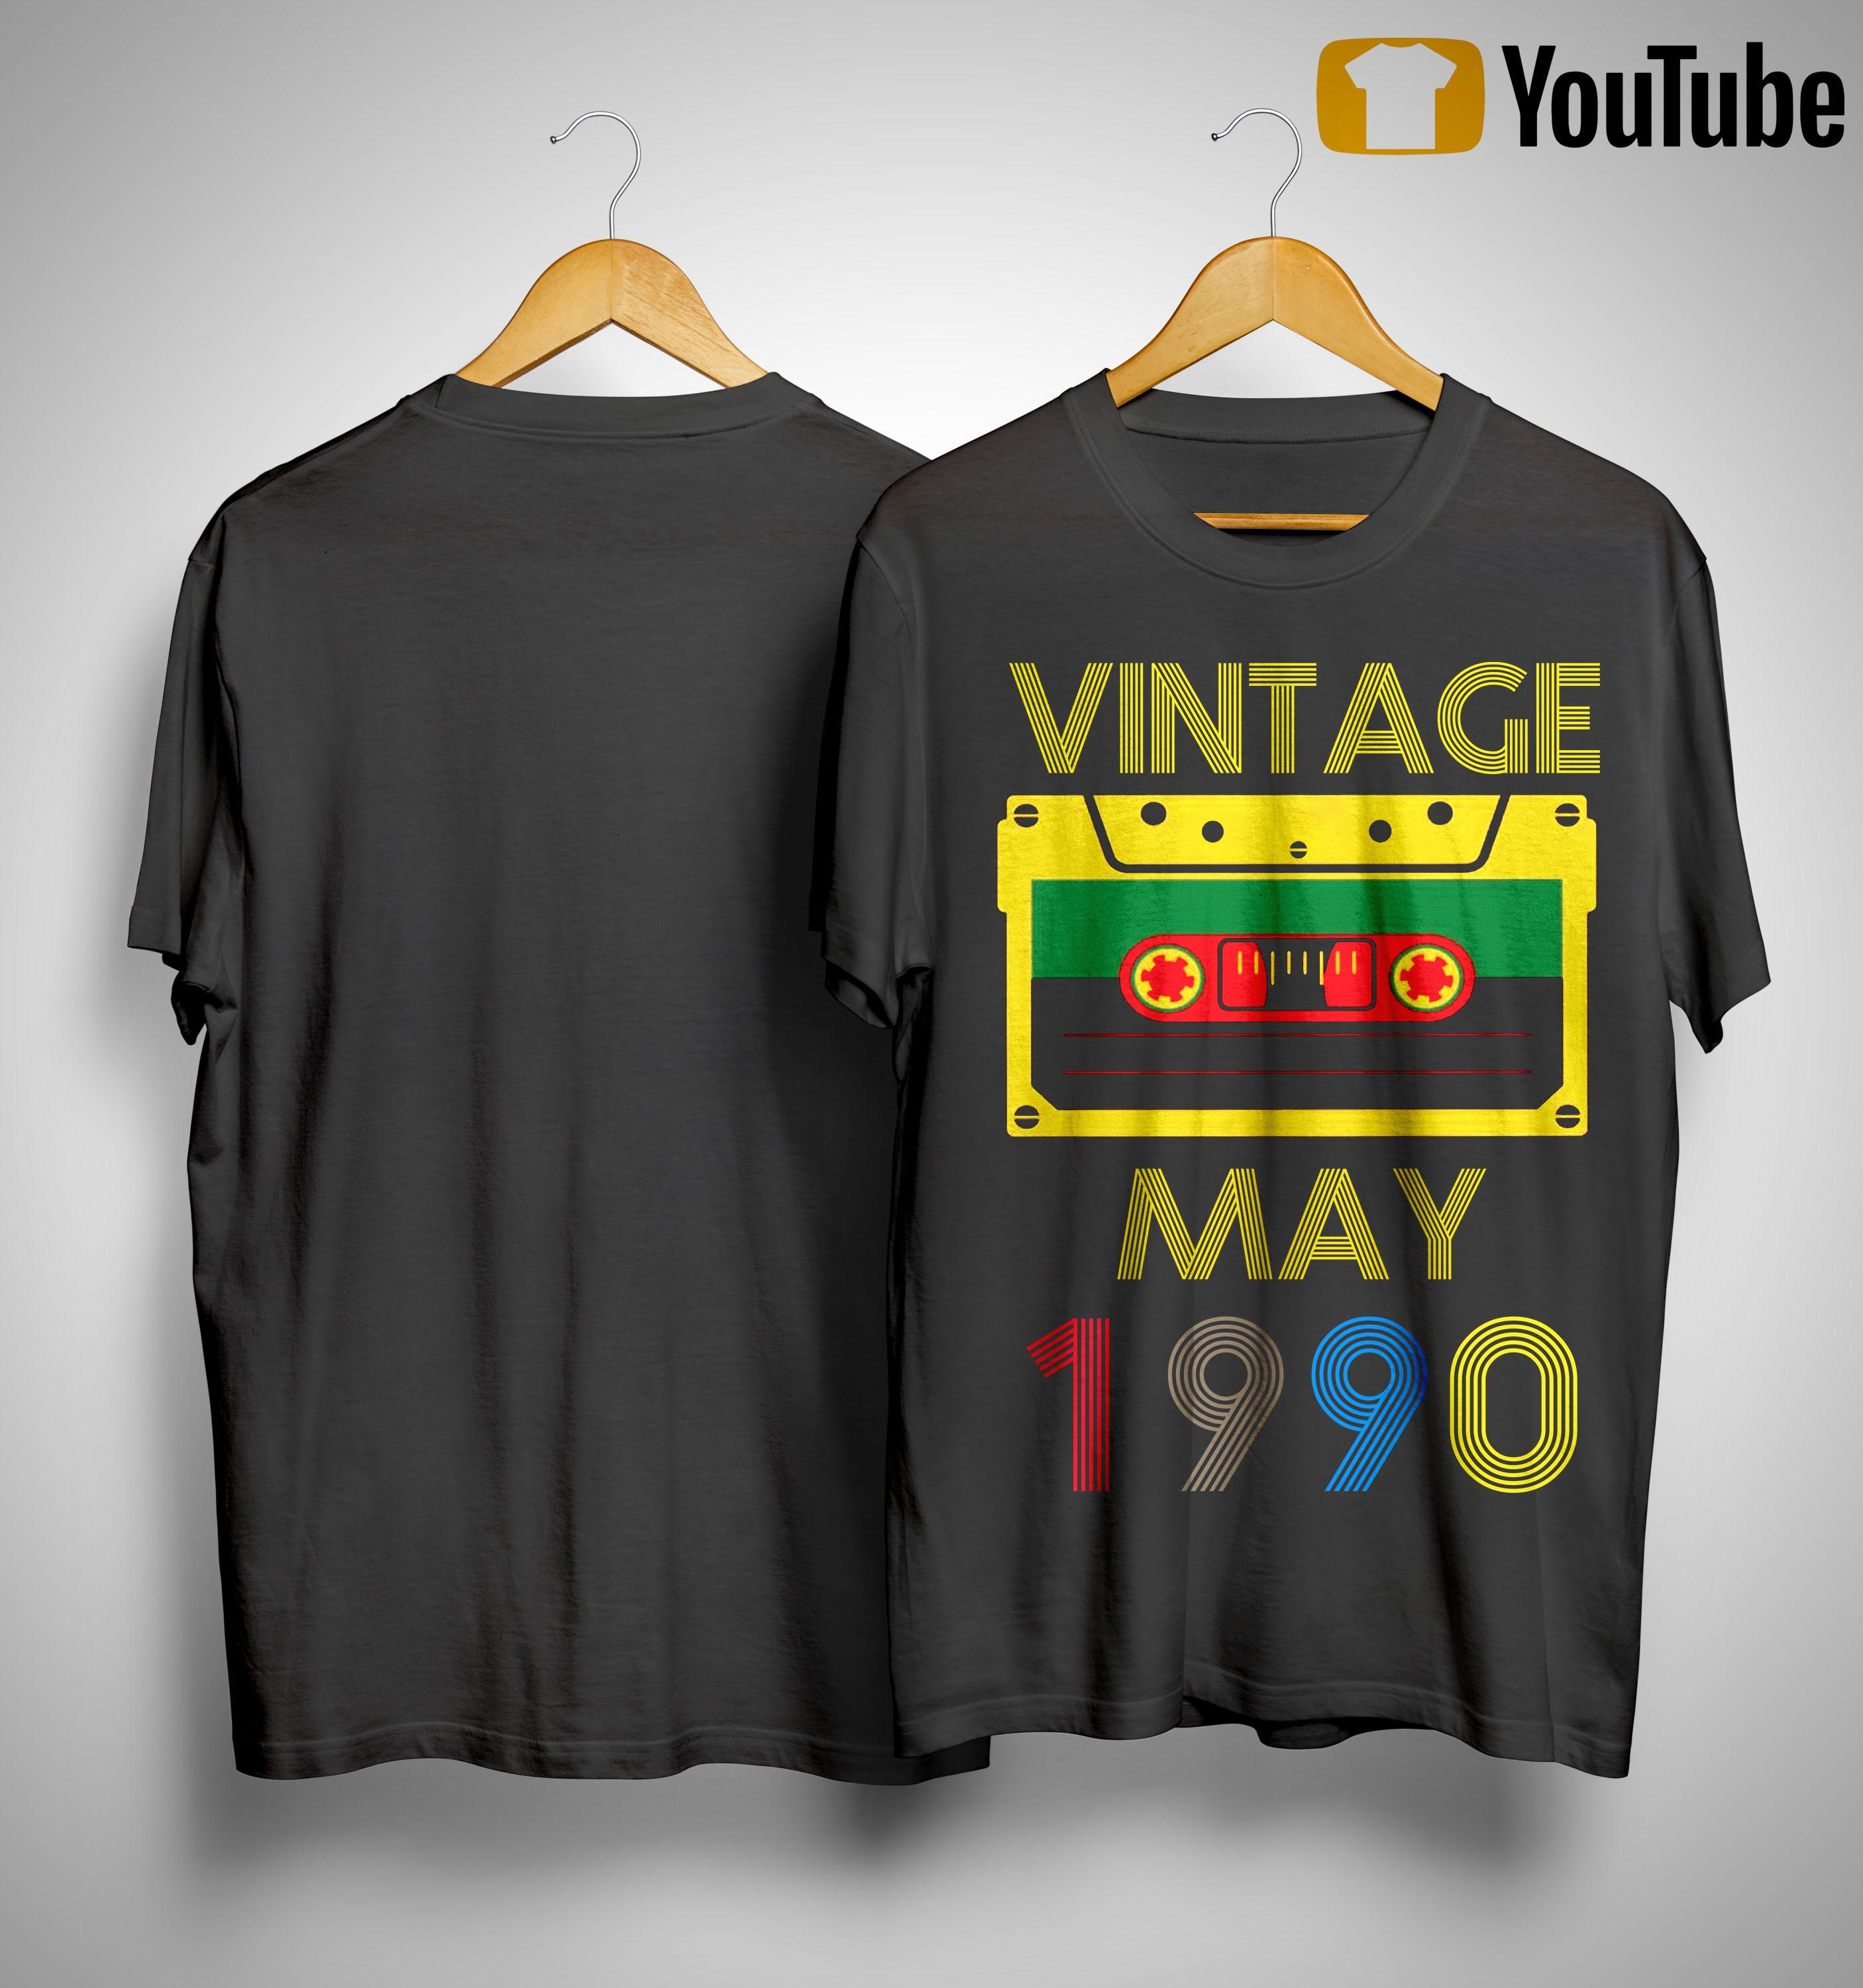 Video Tape Vintage May 1990 Shirt